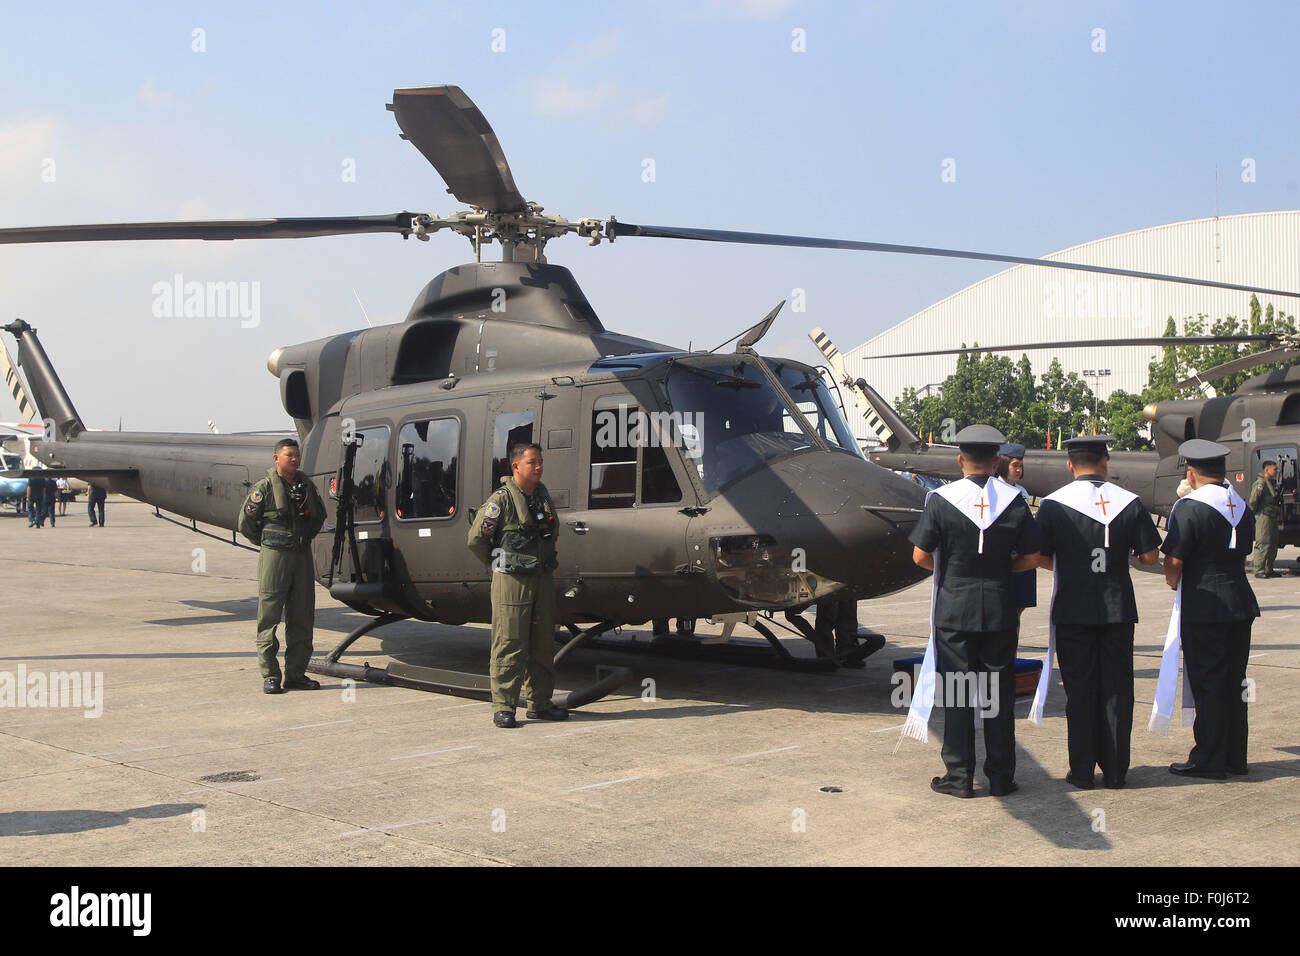 Pasay City, Philippines. 17th Aug, 2015. Military chaplains bless a newly-acquired Bell-412EP helicopter during - Stock Image